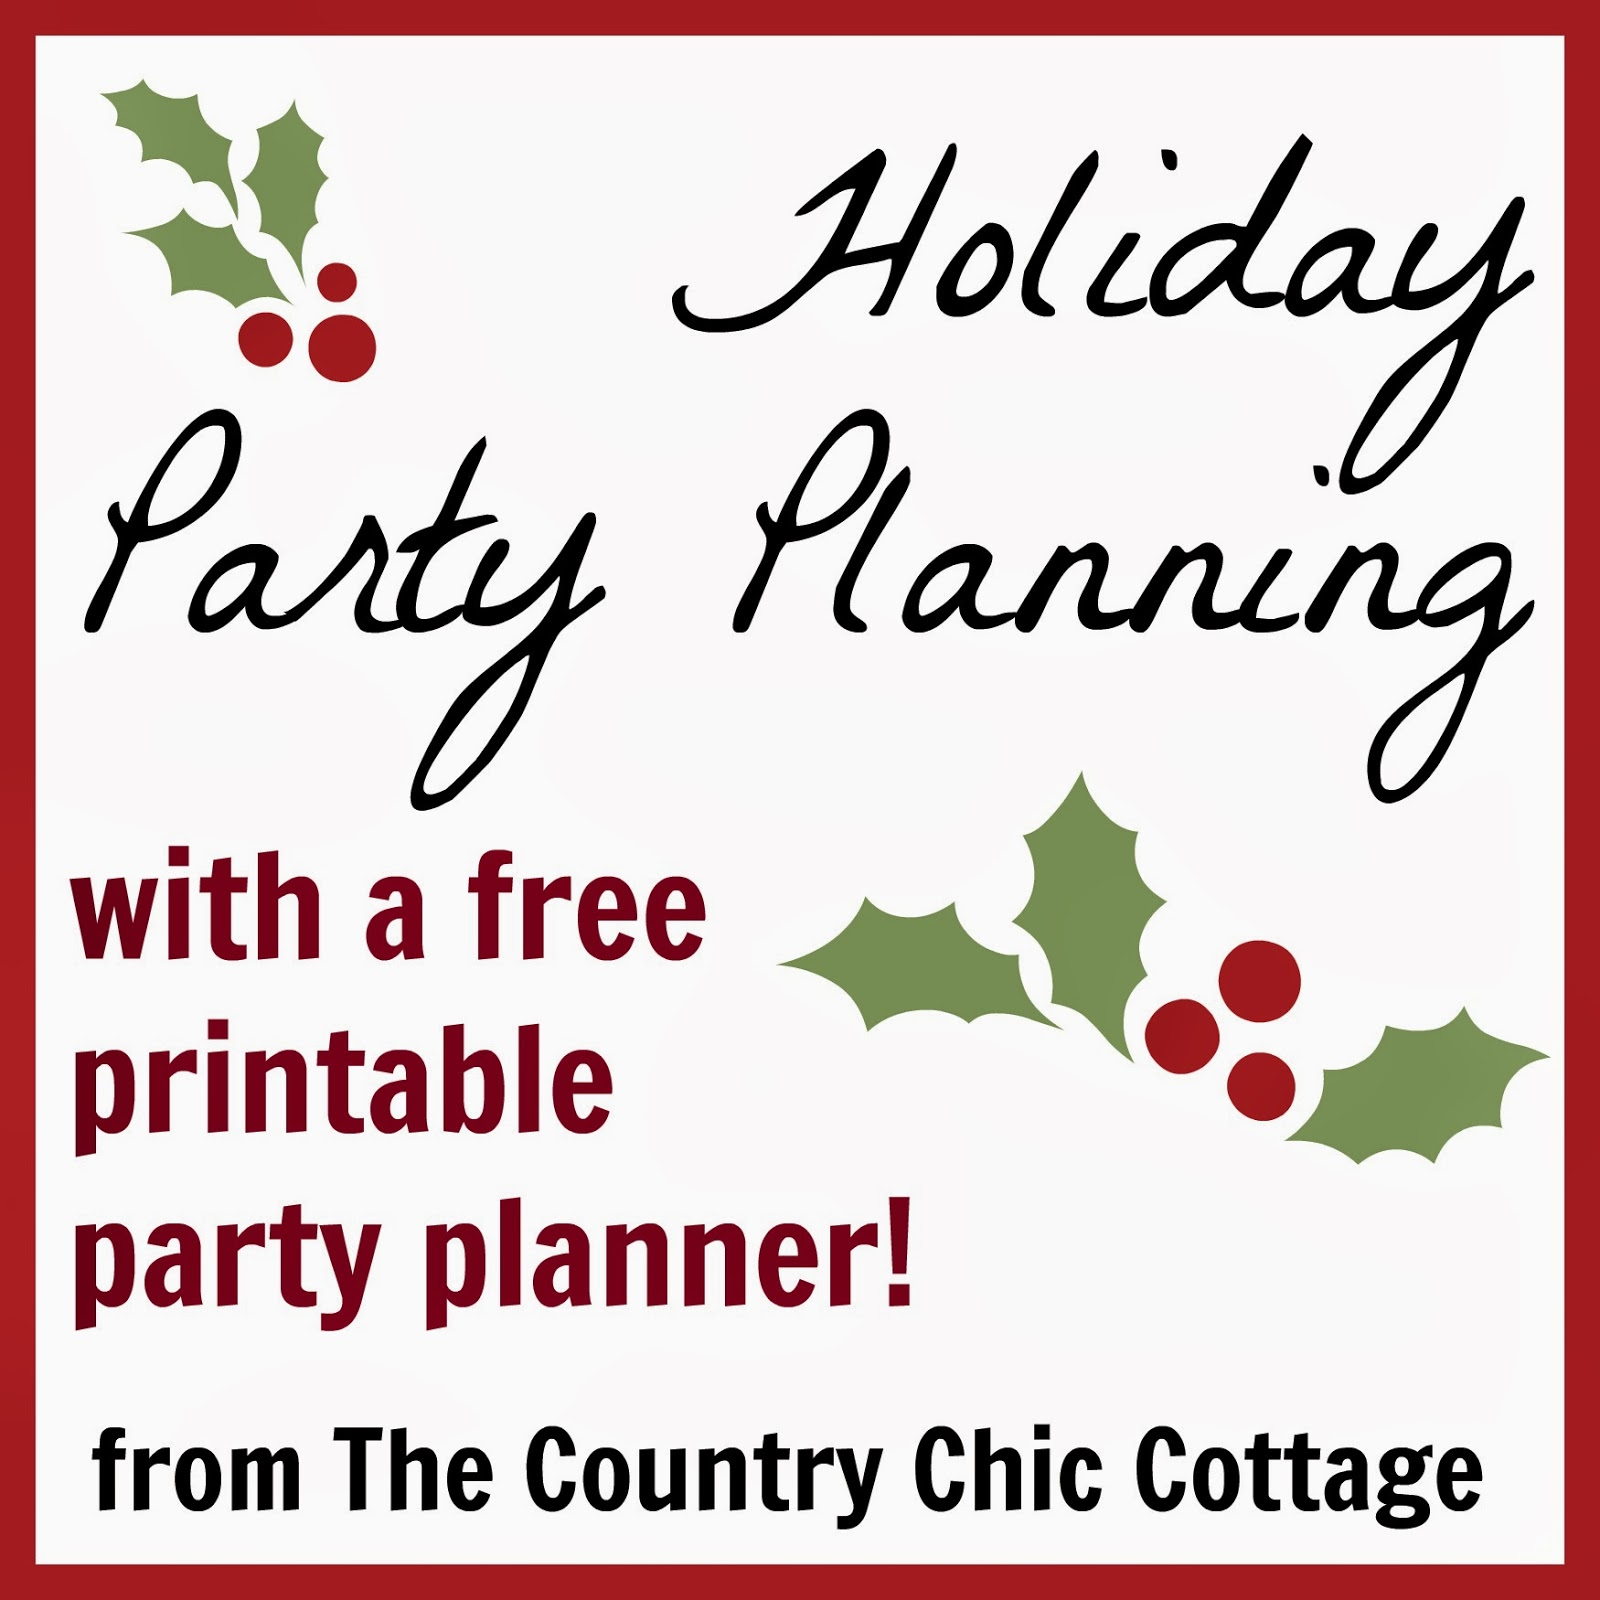 Holiday Party Planning -- come get help with your holiday party planning including a free printable holiday party planner.